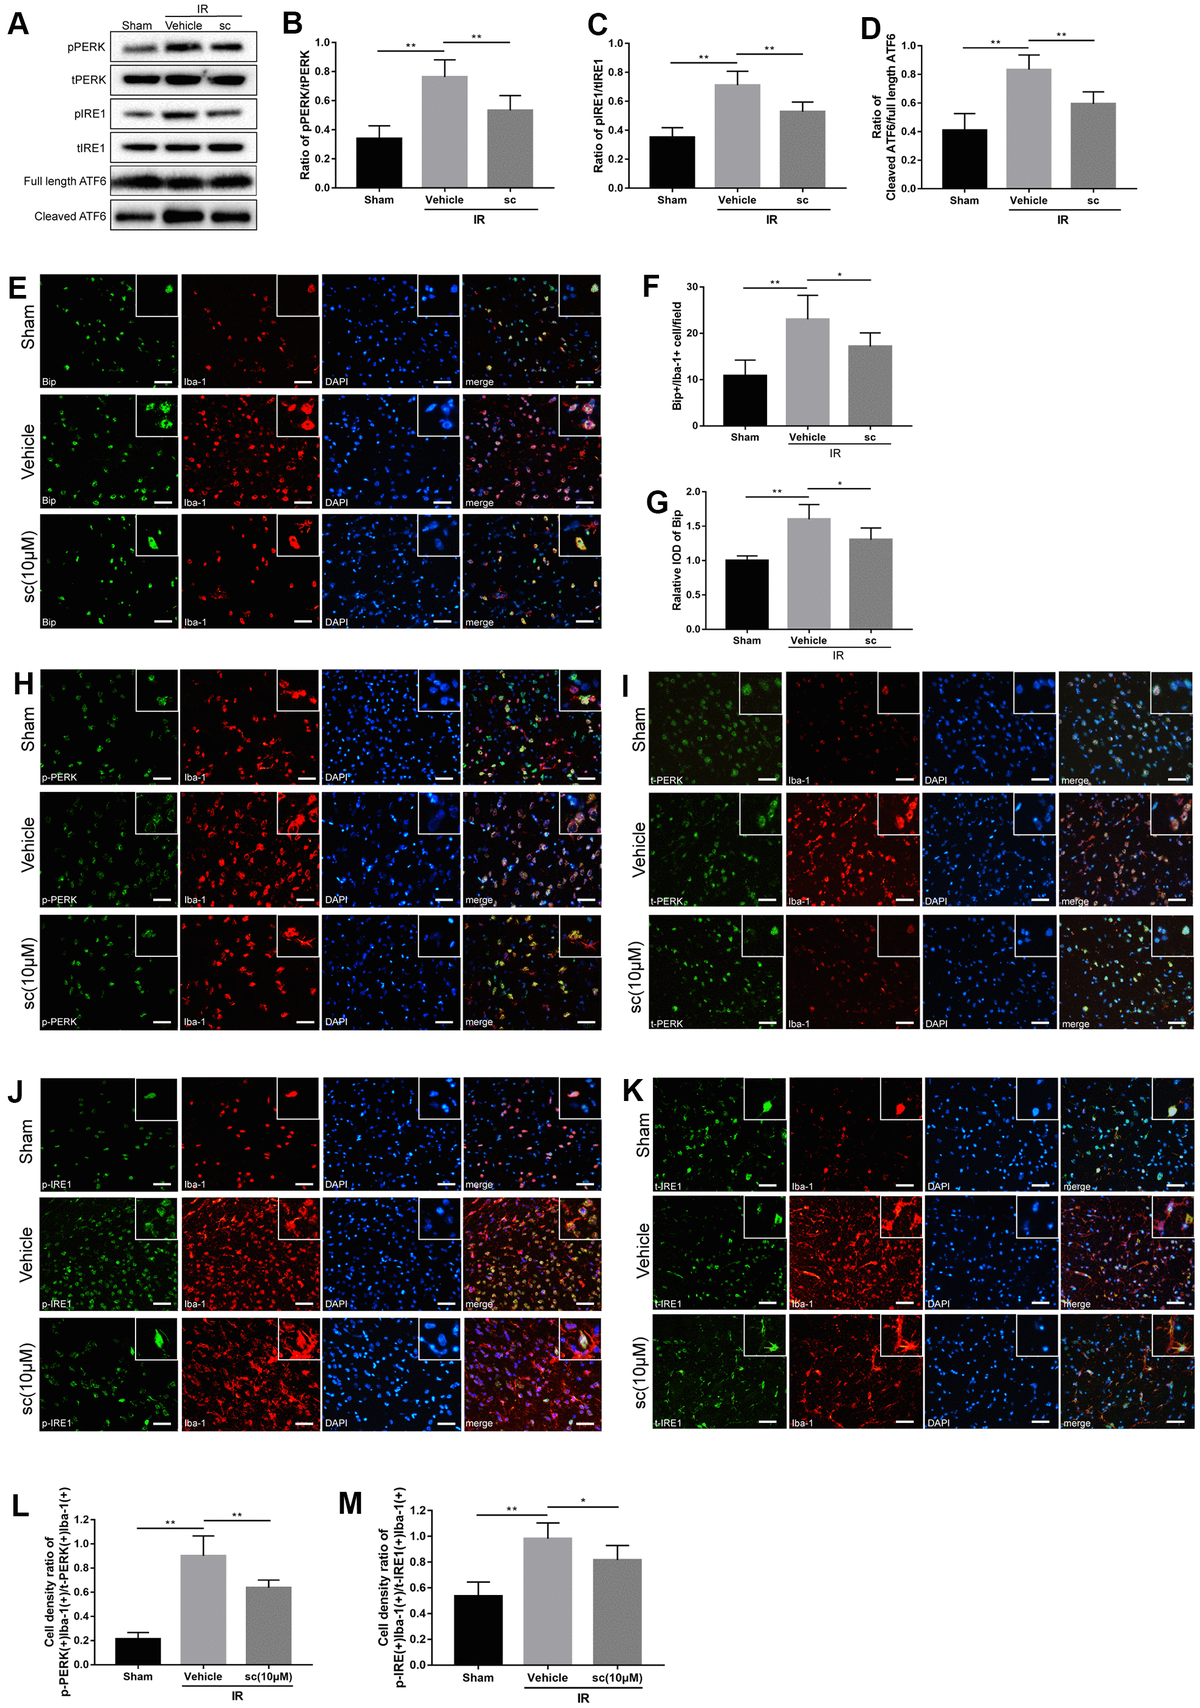 Microglial endoplasmic reticulum (ER) stress was mitigated by PTP1B inhibitor treatment after cerebral ischemia/reperfusion (IR) injury in rats. (A) Western blot to detect the effect of PTP1B inhibitor (10 μM) on phospho-PERK, total-PERK, phospho-IRE1, total-IRE1, cleaved ATF6, and full length ATF6 protein expression in the rat ipsilateral cortex 24 h after IR injury (n = 5 per group). (B–D) Quantitative analysis of band density ratio of phosphor-PERK/total-PERK, phospho-IRE1/total-IRE1, and cleaved ATF6/full length ATF6. Results are presented as the mean ± SEM (n = 4 per group). (E) Double immunofluorescence to detect Bip expression in microglia (Iba-1) 24 h after IR injury. Scale bar = 50 μm. (F, G) Quantitative analysis of Bip+/Iba-1+ cell density and relative integrated optical density (IOD) of Bip in the ipsilateral cerebral cortex (presented as the mean ± SEM, n = 5 per group). (H–K) Double immunofluorescence to detect phospho-PERK, PERK, phospho-IRE1, and IRE1 expression in microglia (Iba-1) 24 h after IR injury. Scale bar = 50 μm. (L, M) Quantitative analysis of double-positive cell density ratio of p-PERK(+)Iba-1(+)/PERK(+)/Iba-1(+) and p-IRE1(+)Iba-1(+)/IRE1(+)Iba-1(+) in the ipsilateral cerebral cortex (presented as the mean ± SEM, n = 6 per group). *p p p